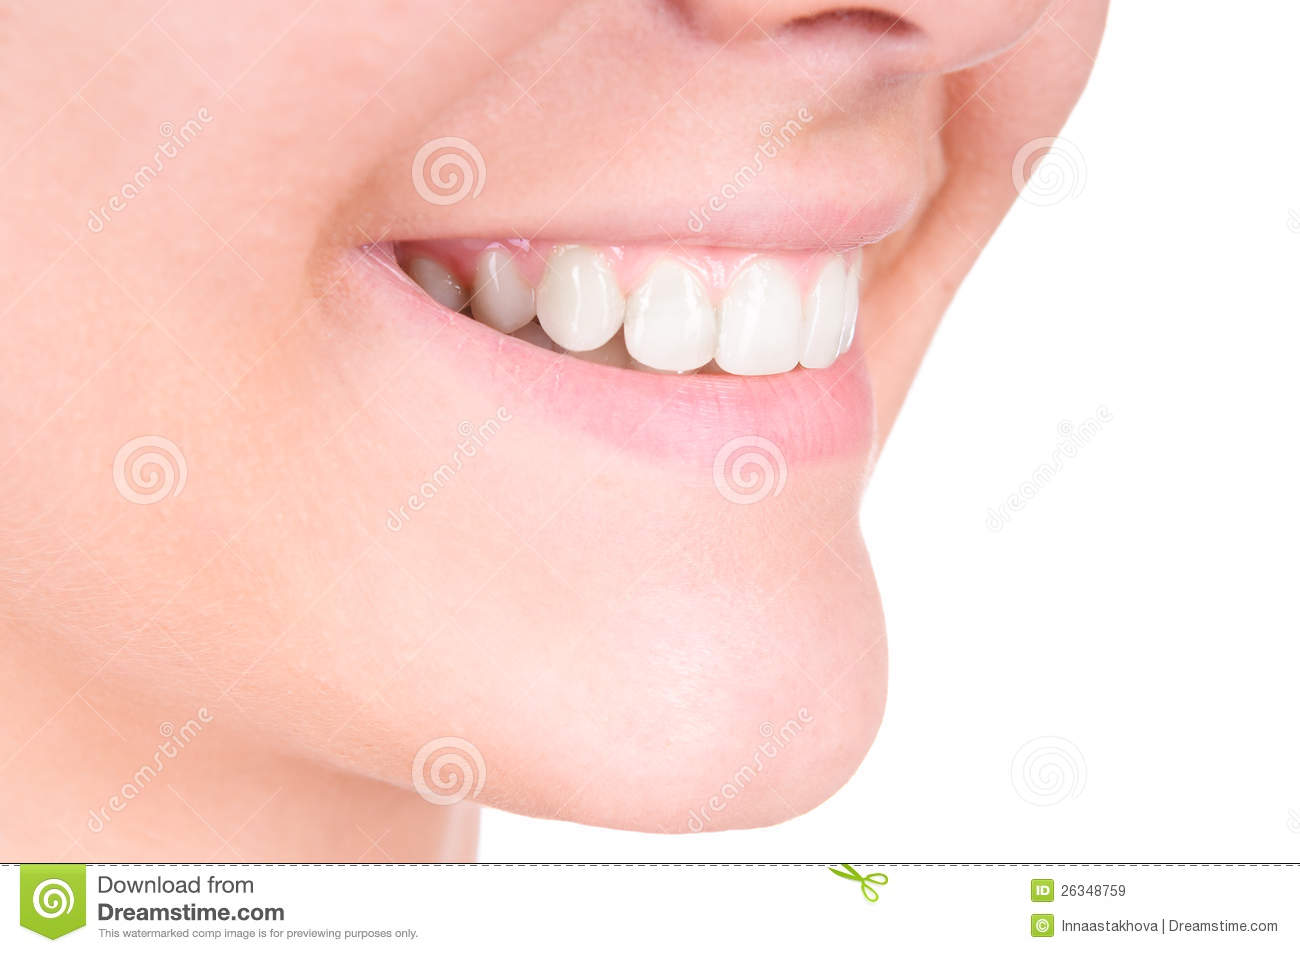 importance of timing in orthodontic treatment The importance of comprehensive orthodontic records cannot be overemphasized orthodontic records should not only include the initial data, but all information related to the patient's treatment .